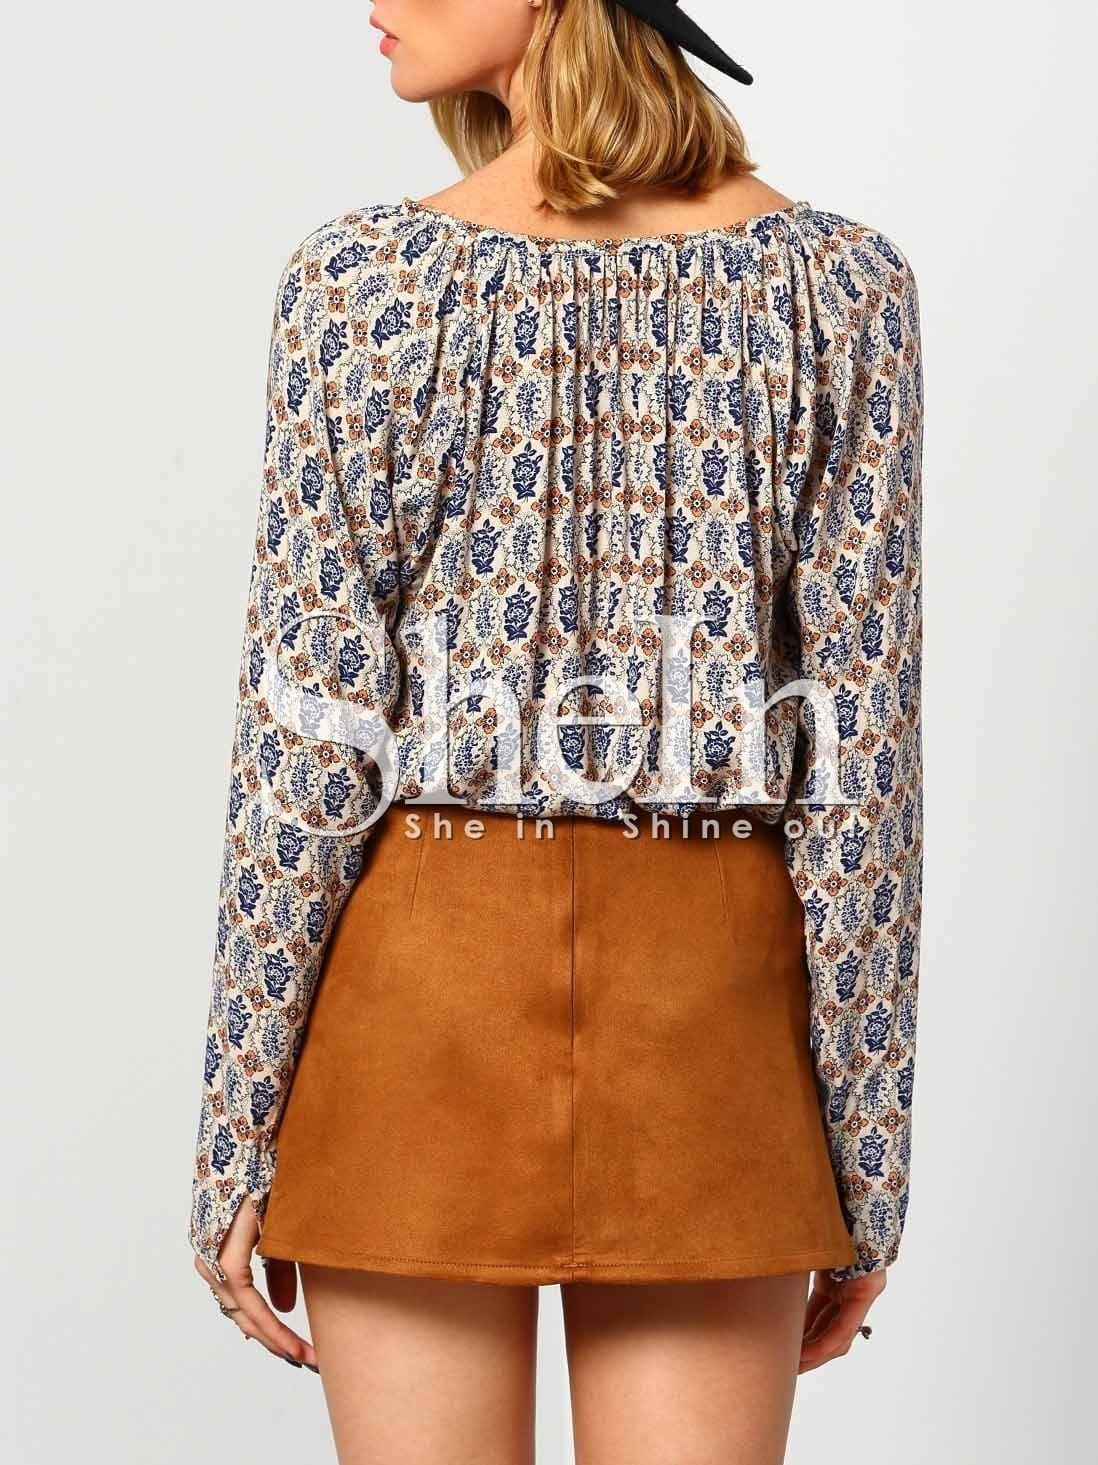 Print Blouse Long Sleeve 94